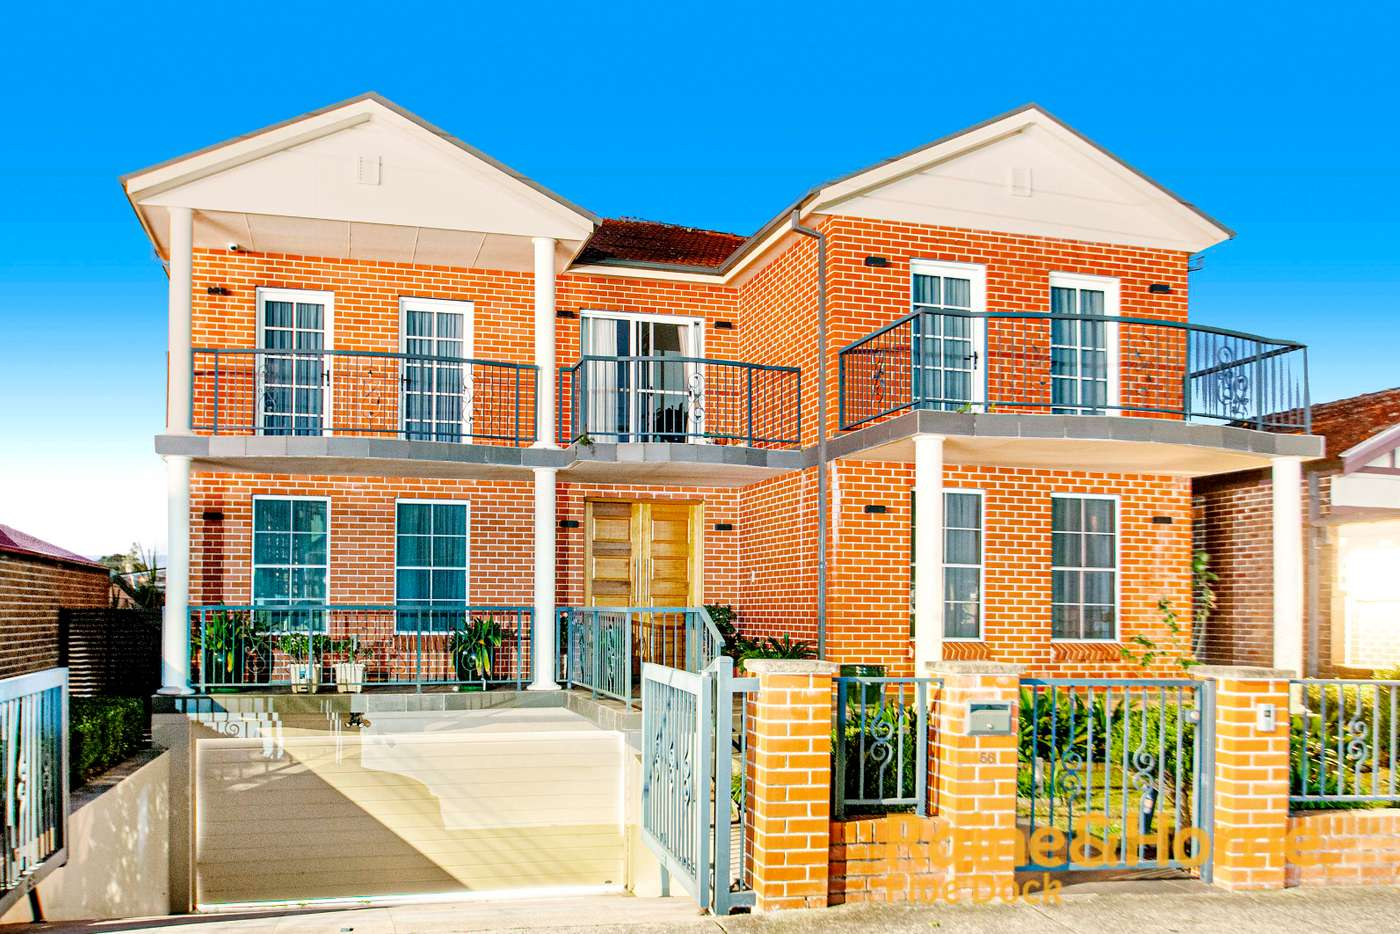 Main view of Homely house listing, 56 Coranto Street, Wareemba NSW 2046